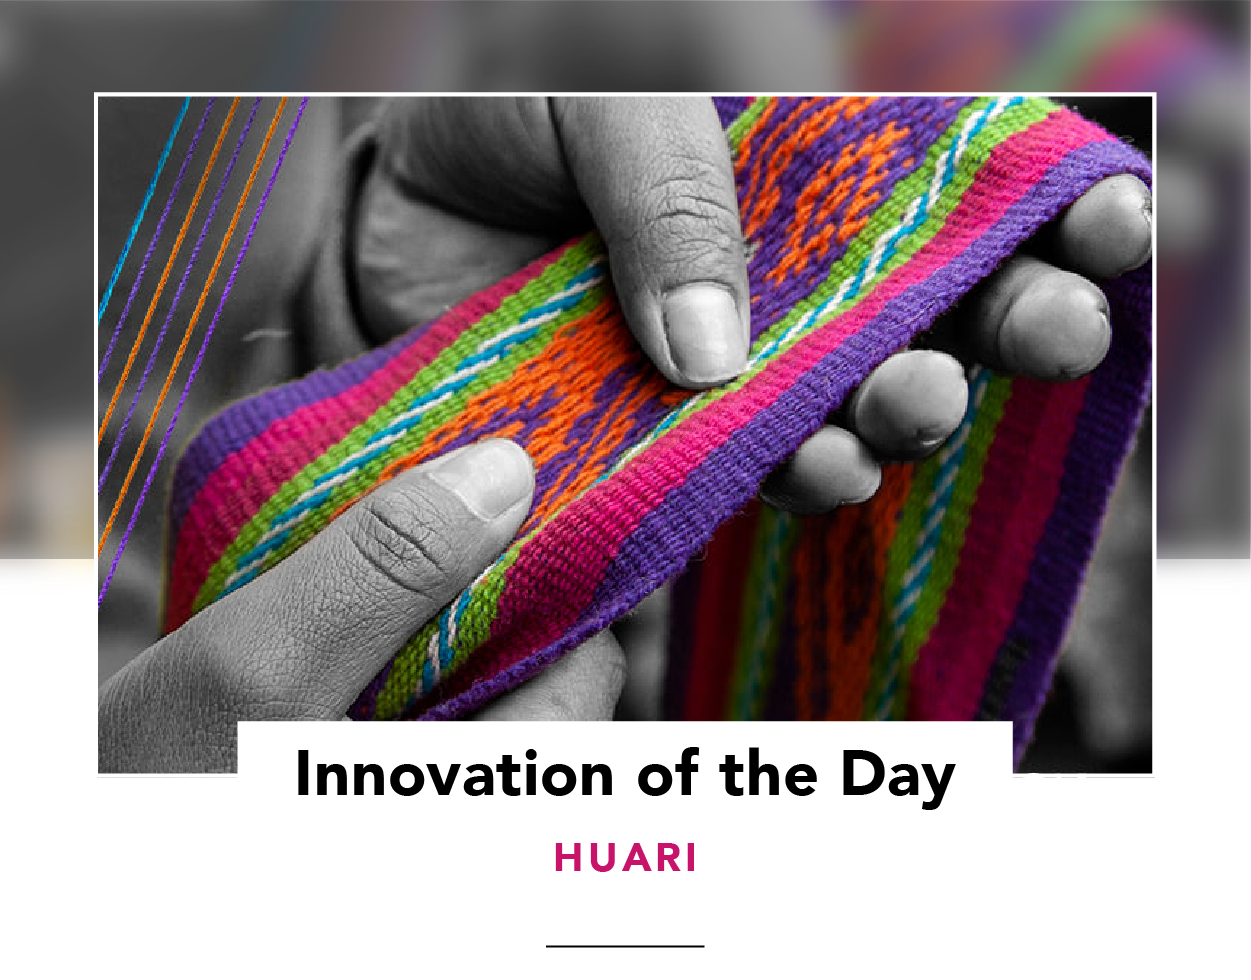 Woman's hands holding a piece of colorful woven fabric